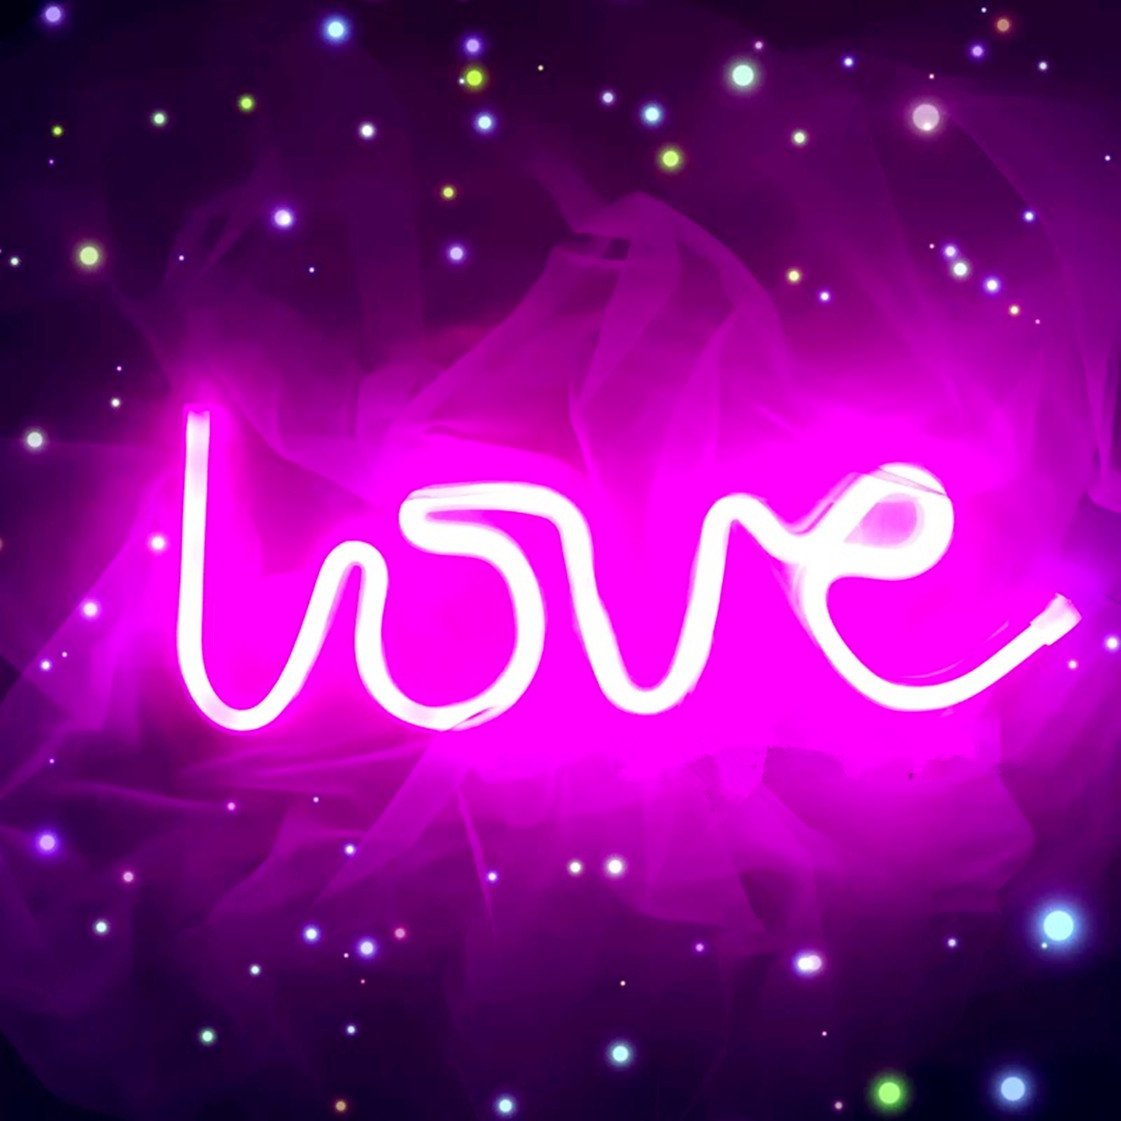 Neon Love Signs Light 13.70'' Large LED Love Art Decorative Marquee Sign - Wall Decor/Table Decor for Wedding Party Kids Room Living Room House Bar Pub Hotel Beach Recreational (Purple Pink)